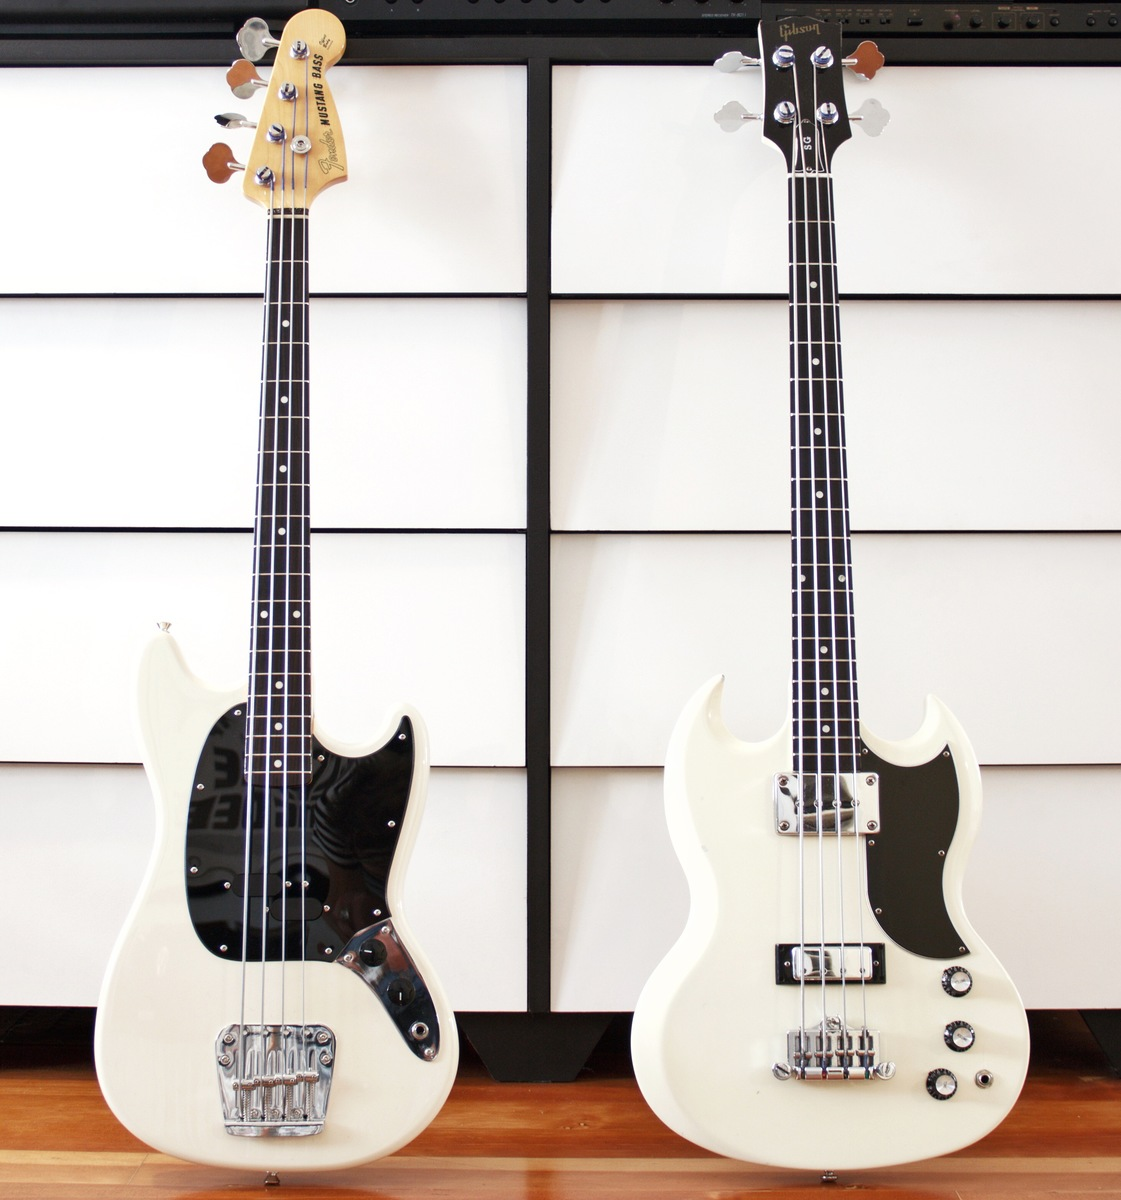 Photo of Gibson SG Bass Guitar and more gear